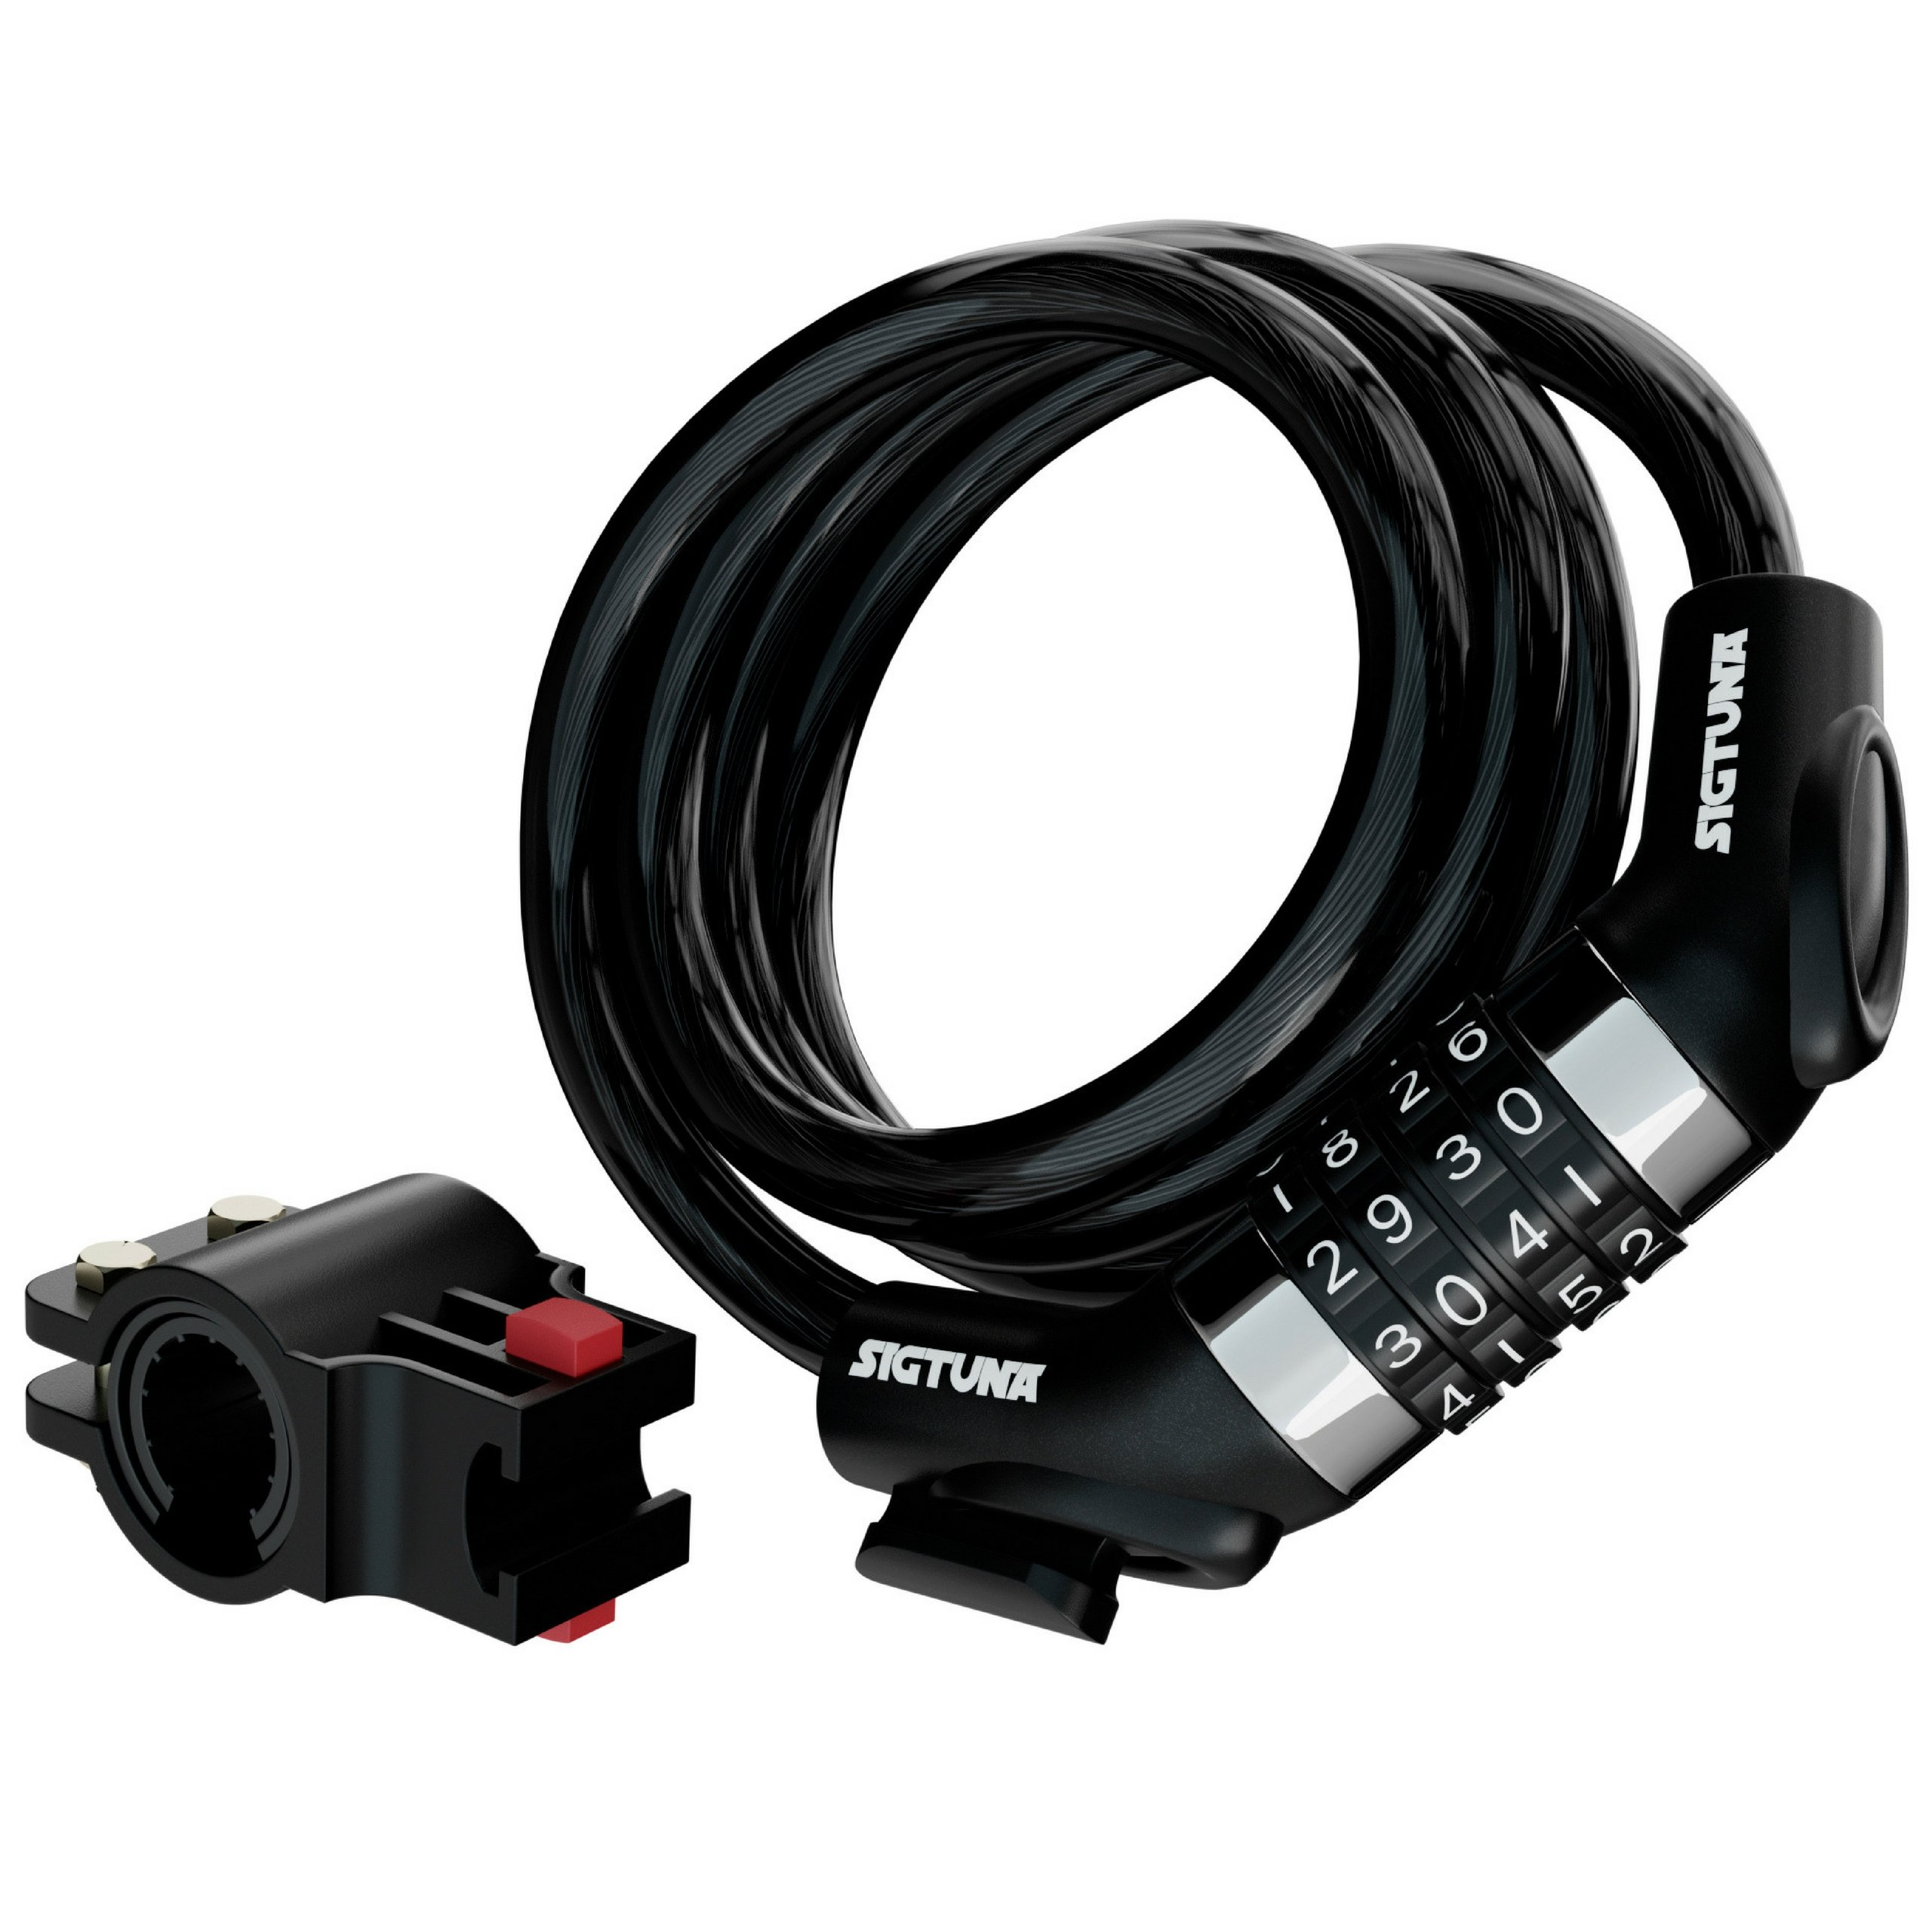 SIGTUNA Bike Cable Locks – 4 ft Self Coiling Resettable Keyless Combination Bike Lock Combo with Heavy Duty Mounting Bracket Holder and 10 mm Thick Vinyl Covered Cable